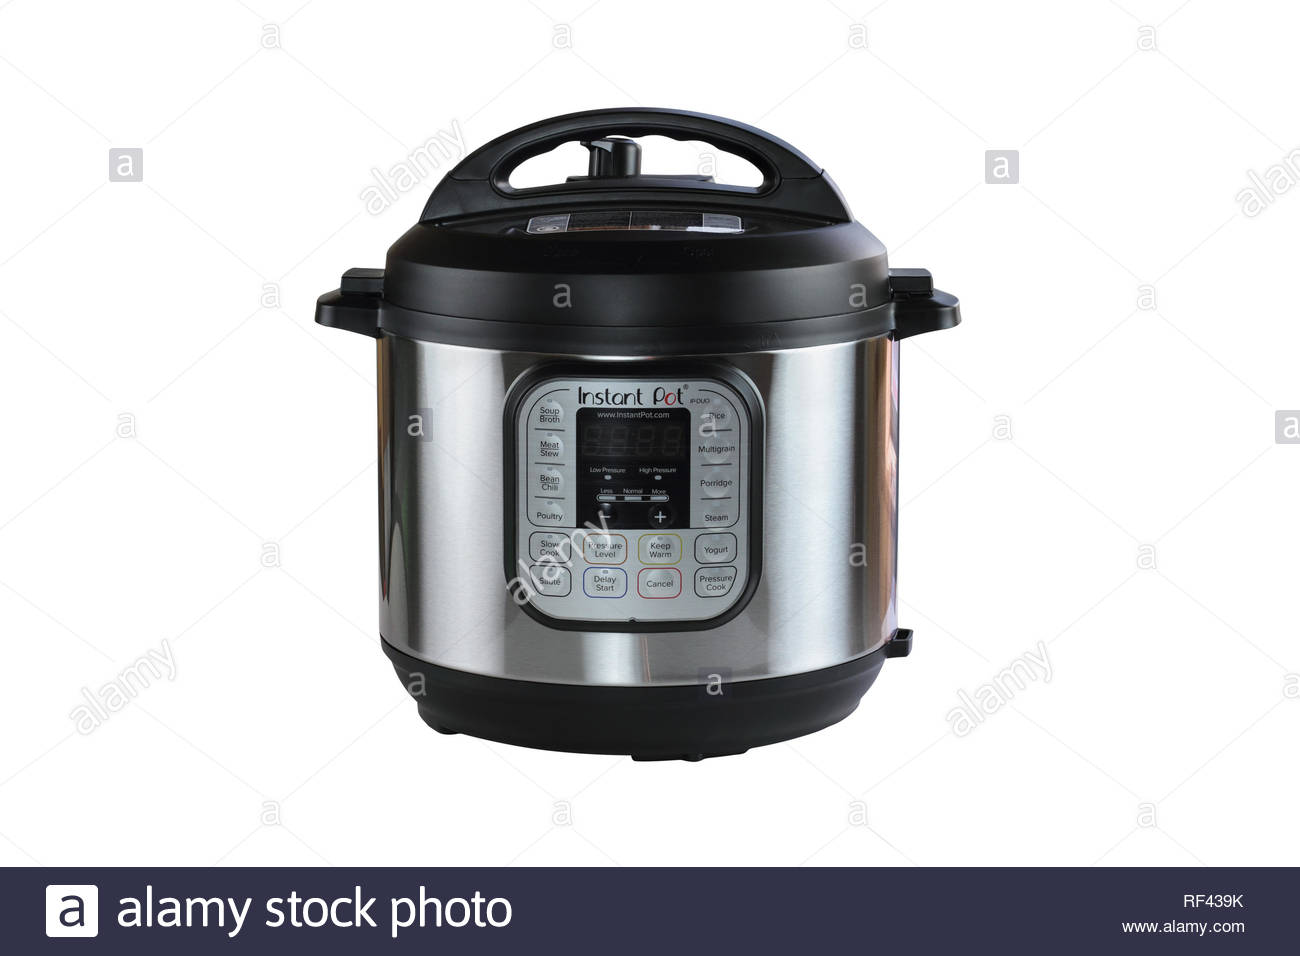 Breeding, KY, USA - January 08, 2019: Instant Pot pressure cooker isolated over white background with clipping path included. - Stock Image